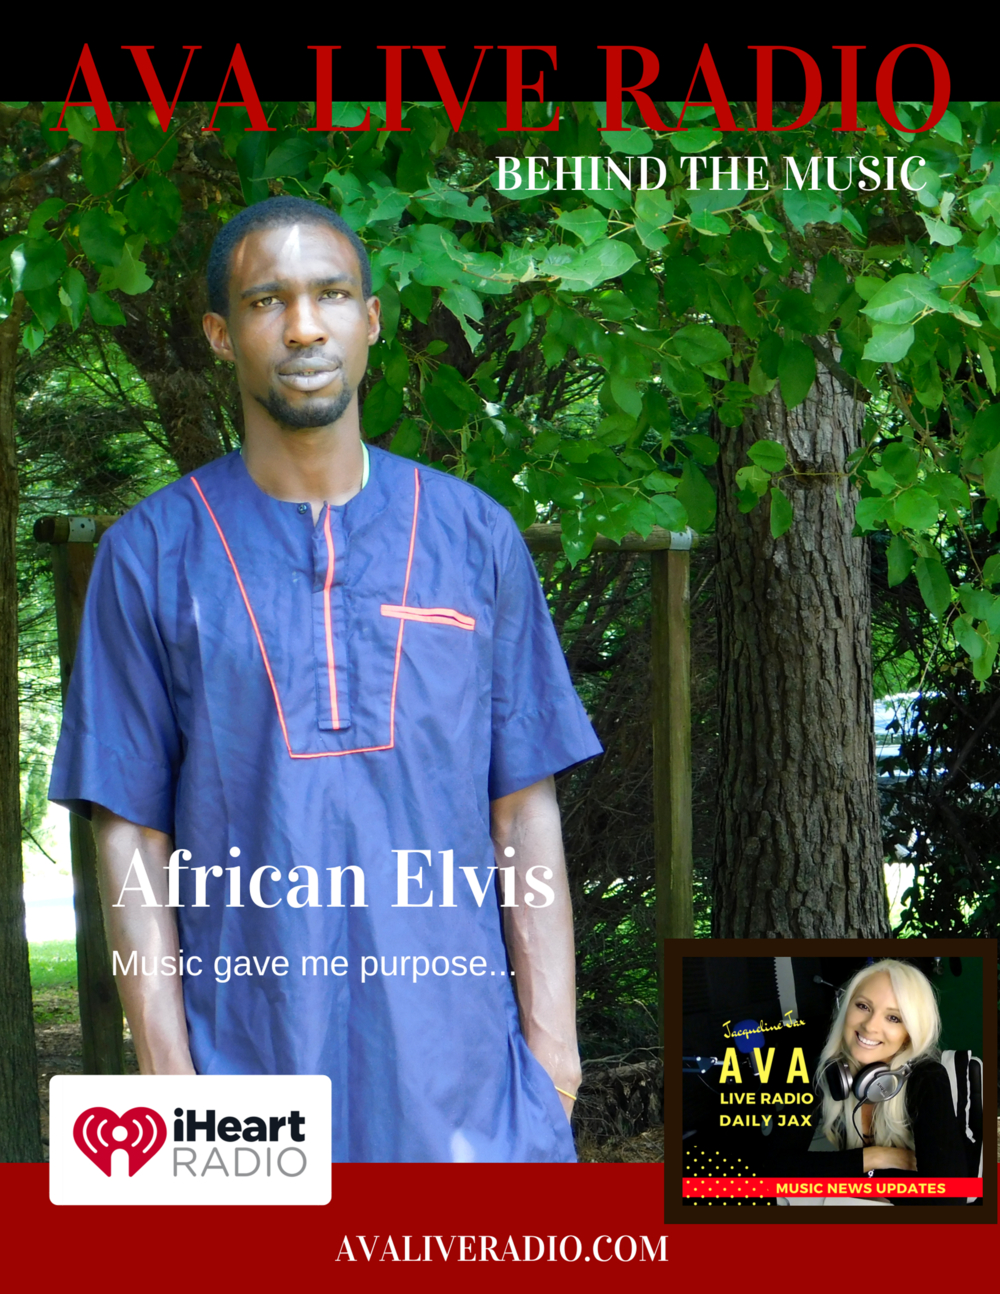 African Elvis  AVA LIVE RADIO.png